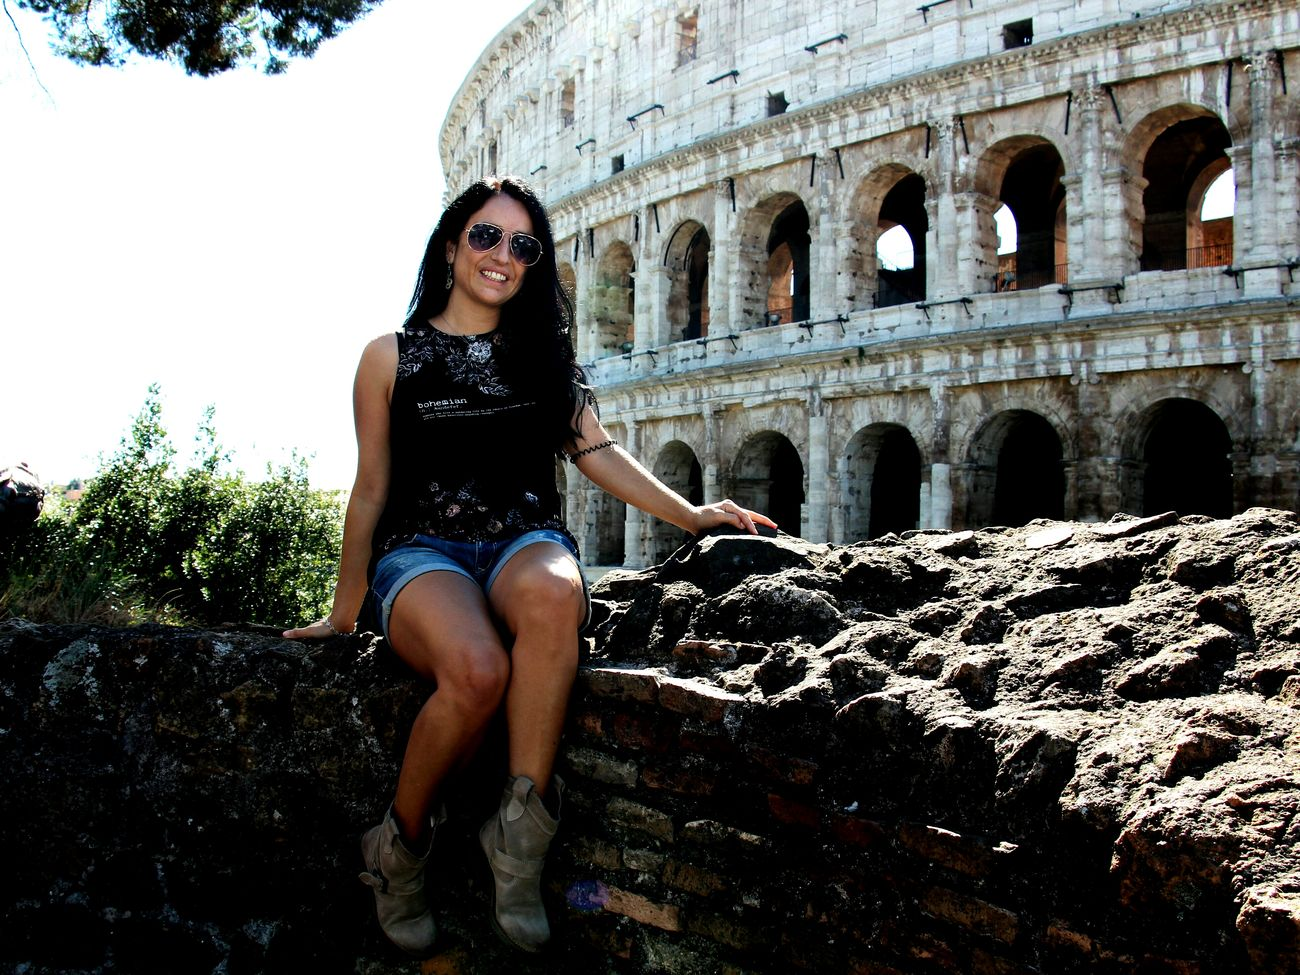 Sweetroma Architecture Vacations Historical Monuments Historic City Beautiful Place Rome Italy🇮🇹 Coliseo.Roma